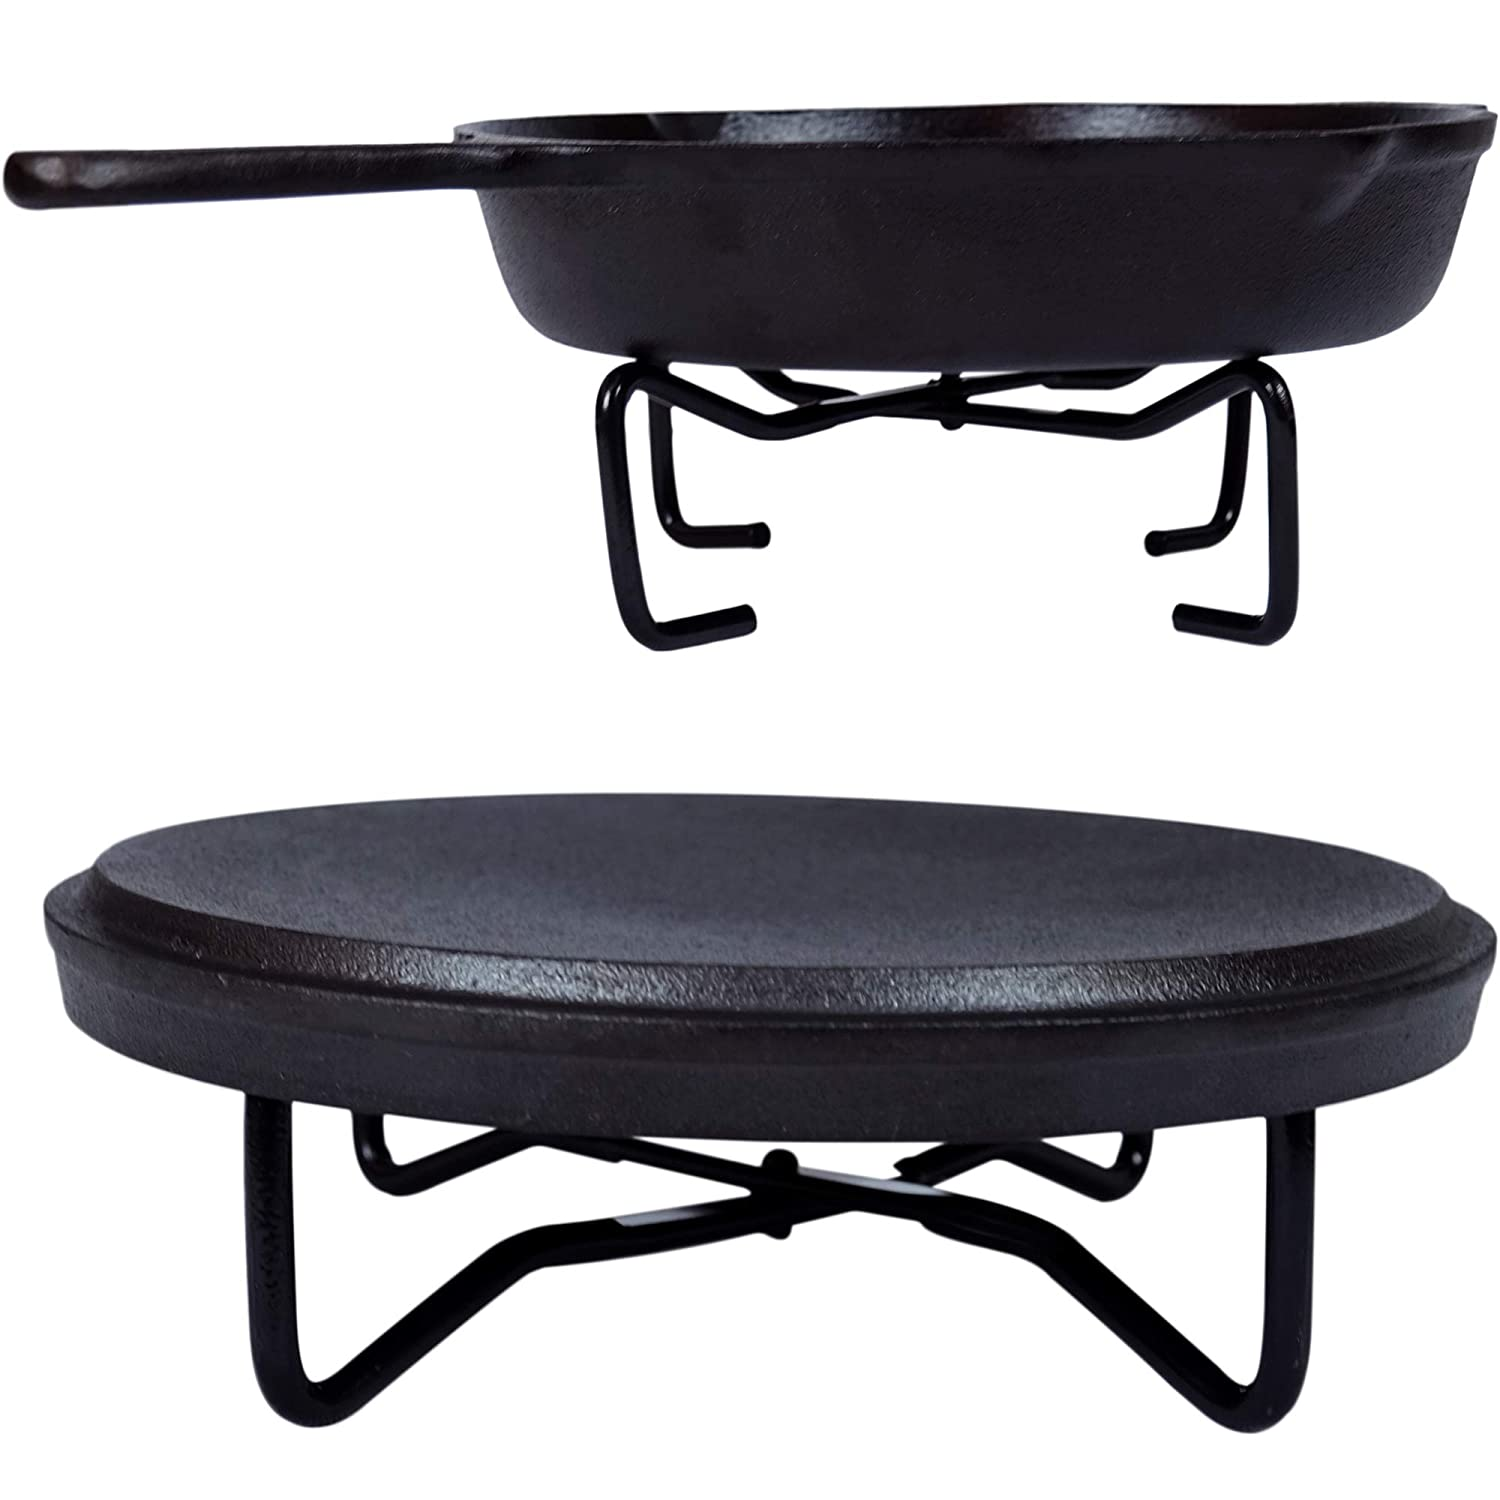 Lid stand, Camp Dutch Oven Tool